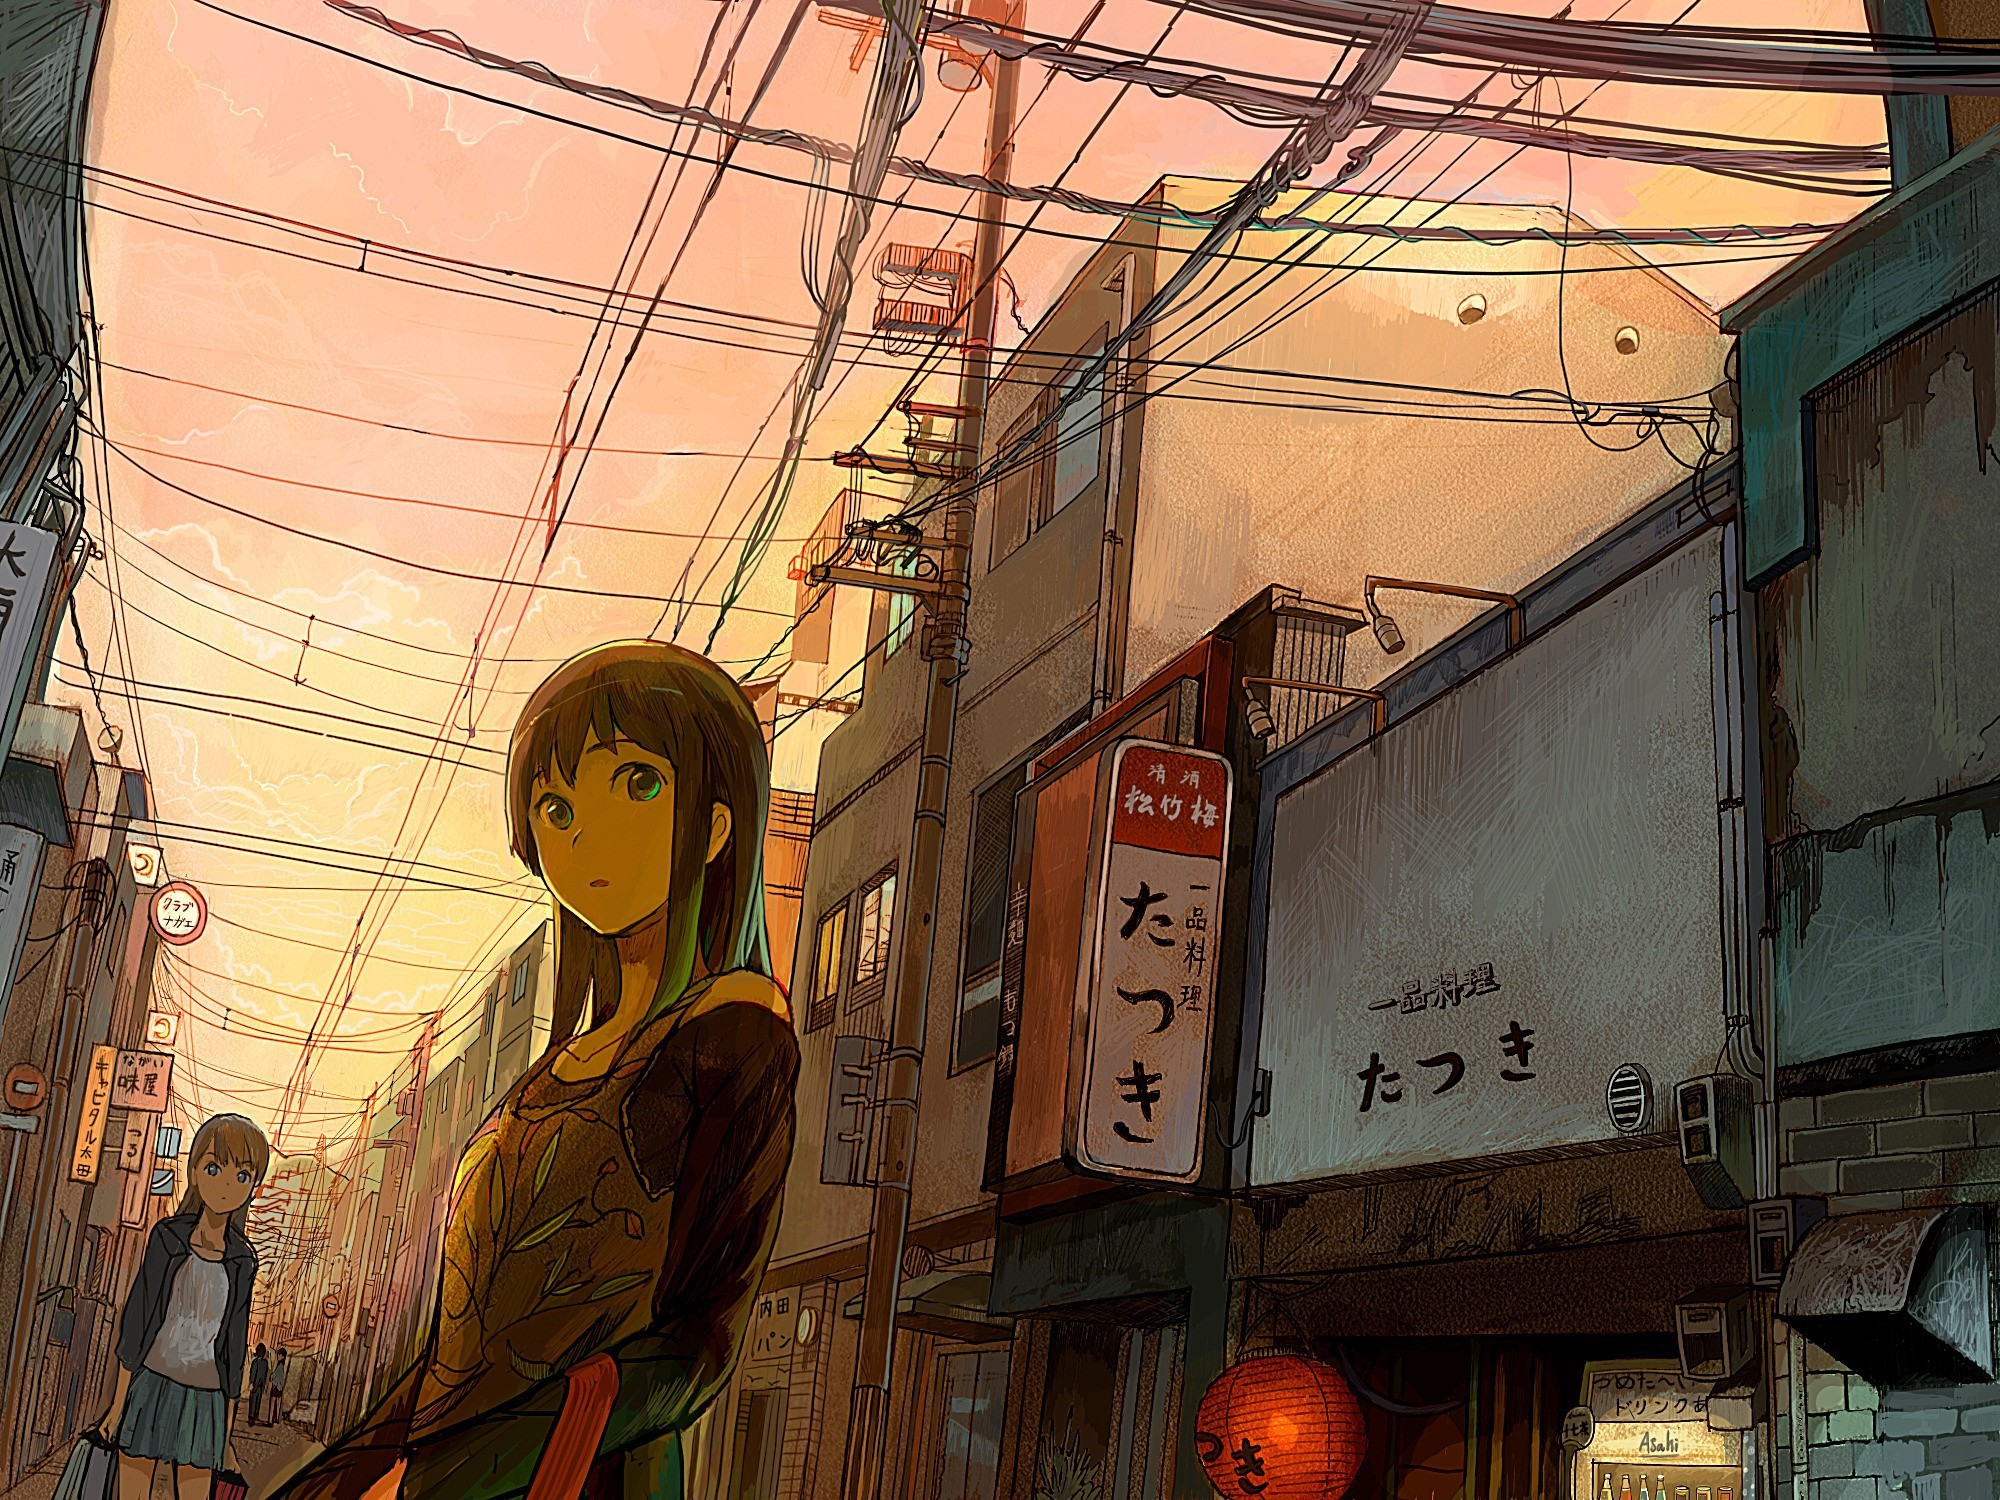 244798-anime-city-wallpaper-2000x1500-for-htc.jpg